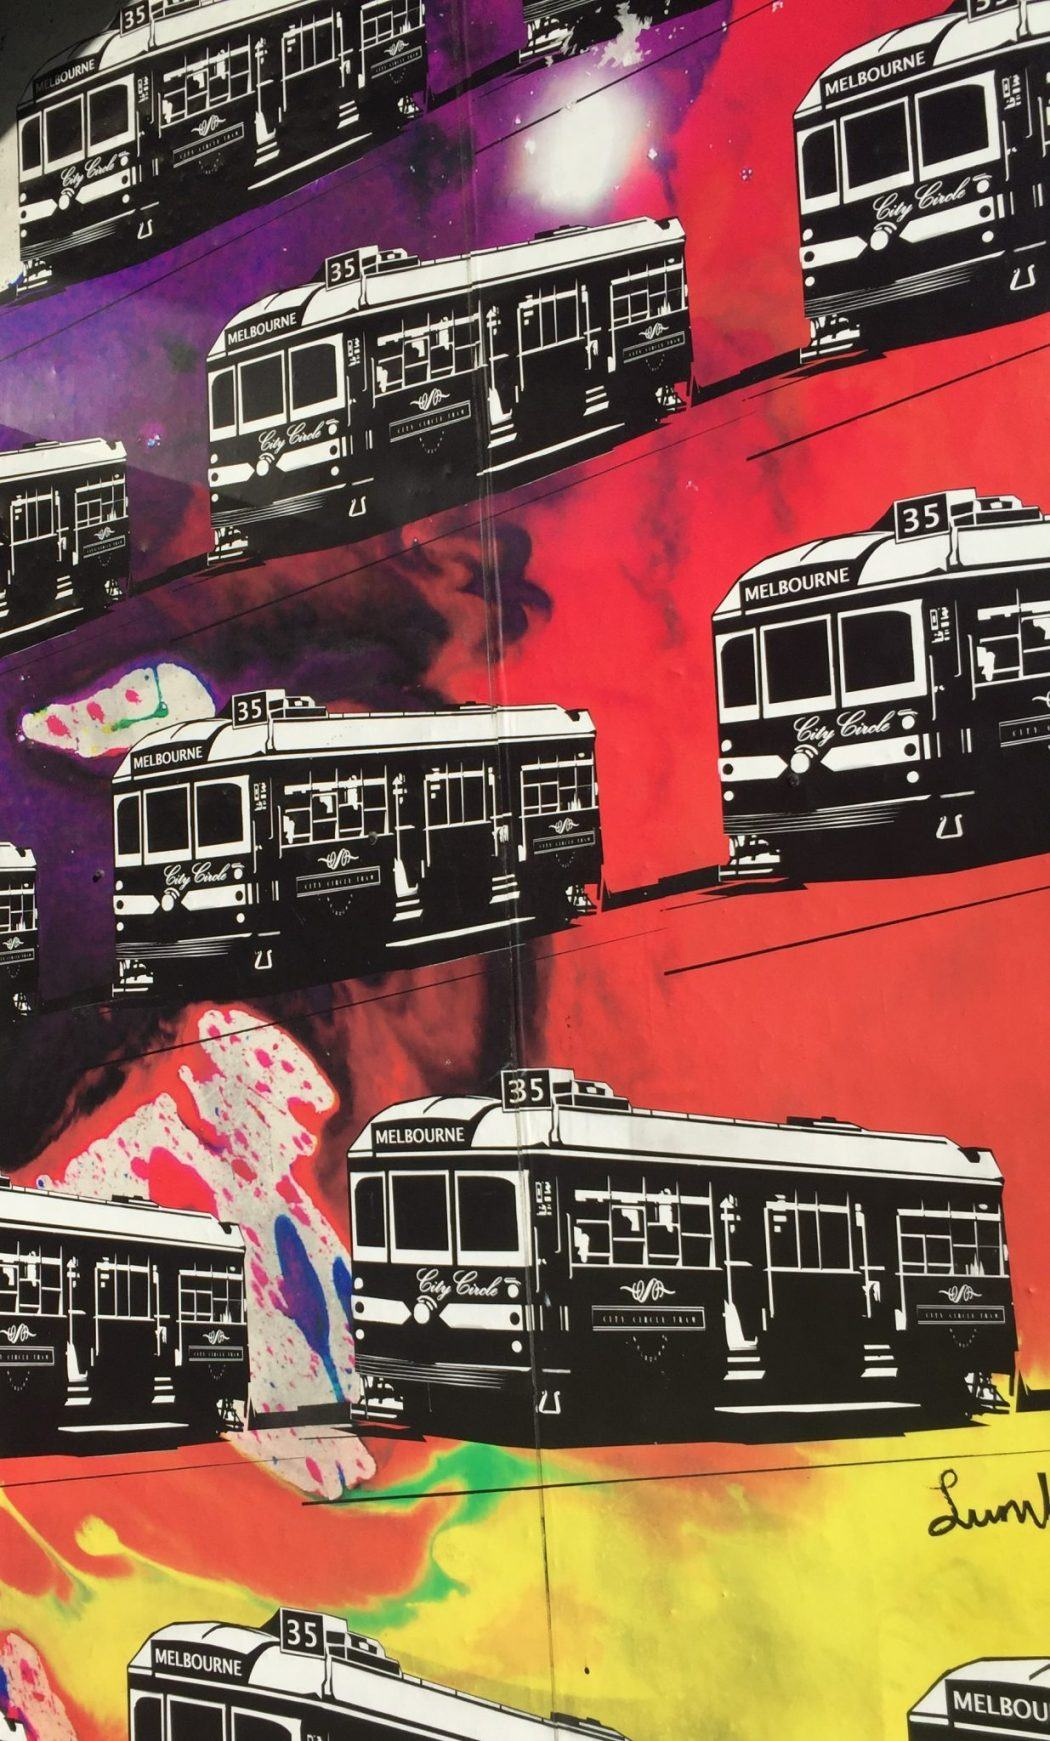 print work of melbourne trams against colourful backgrounds